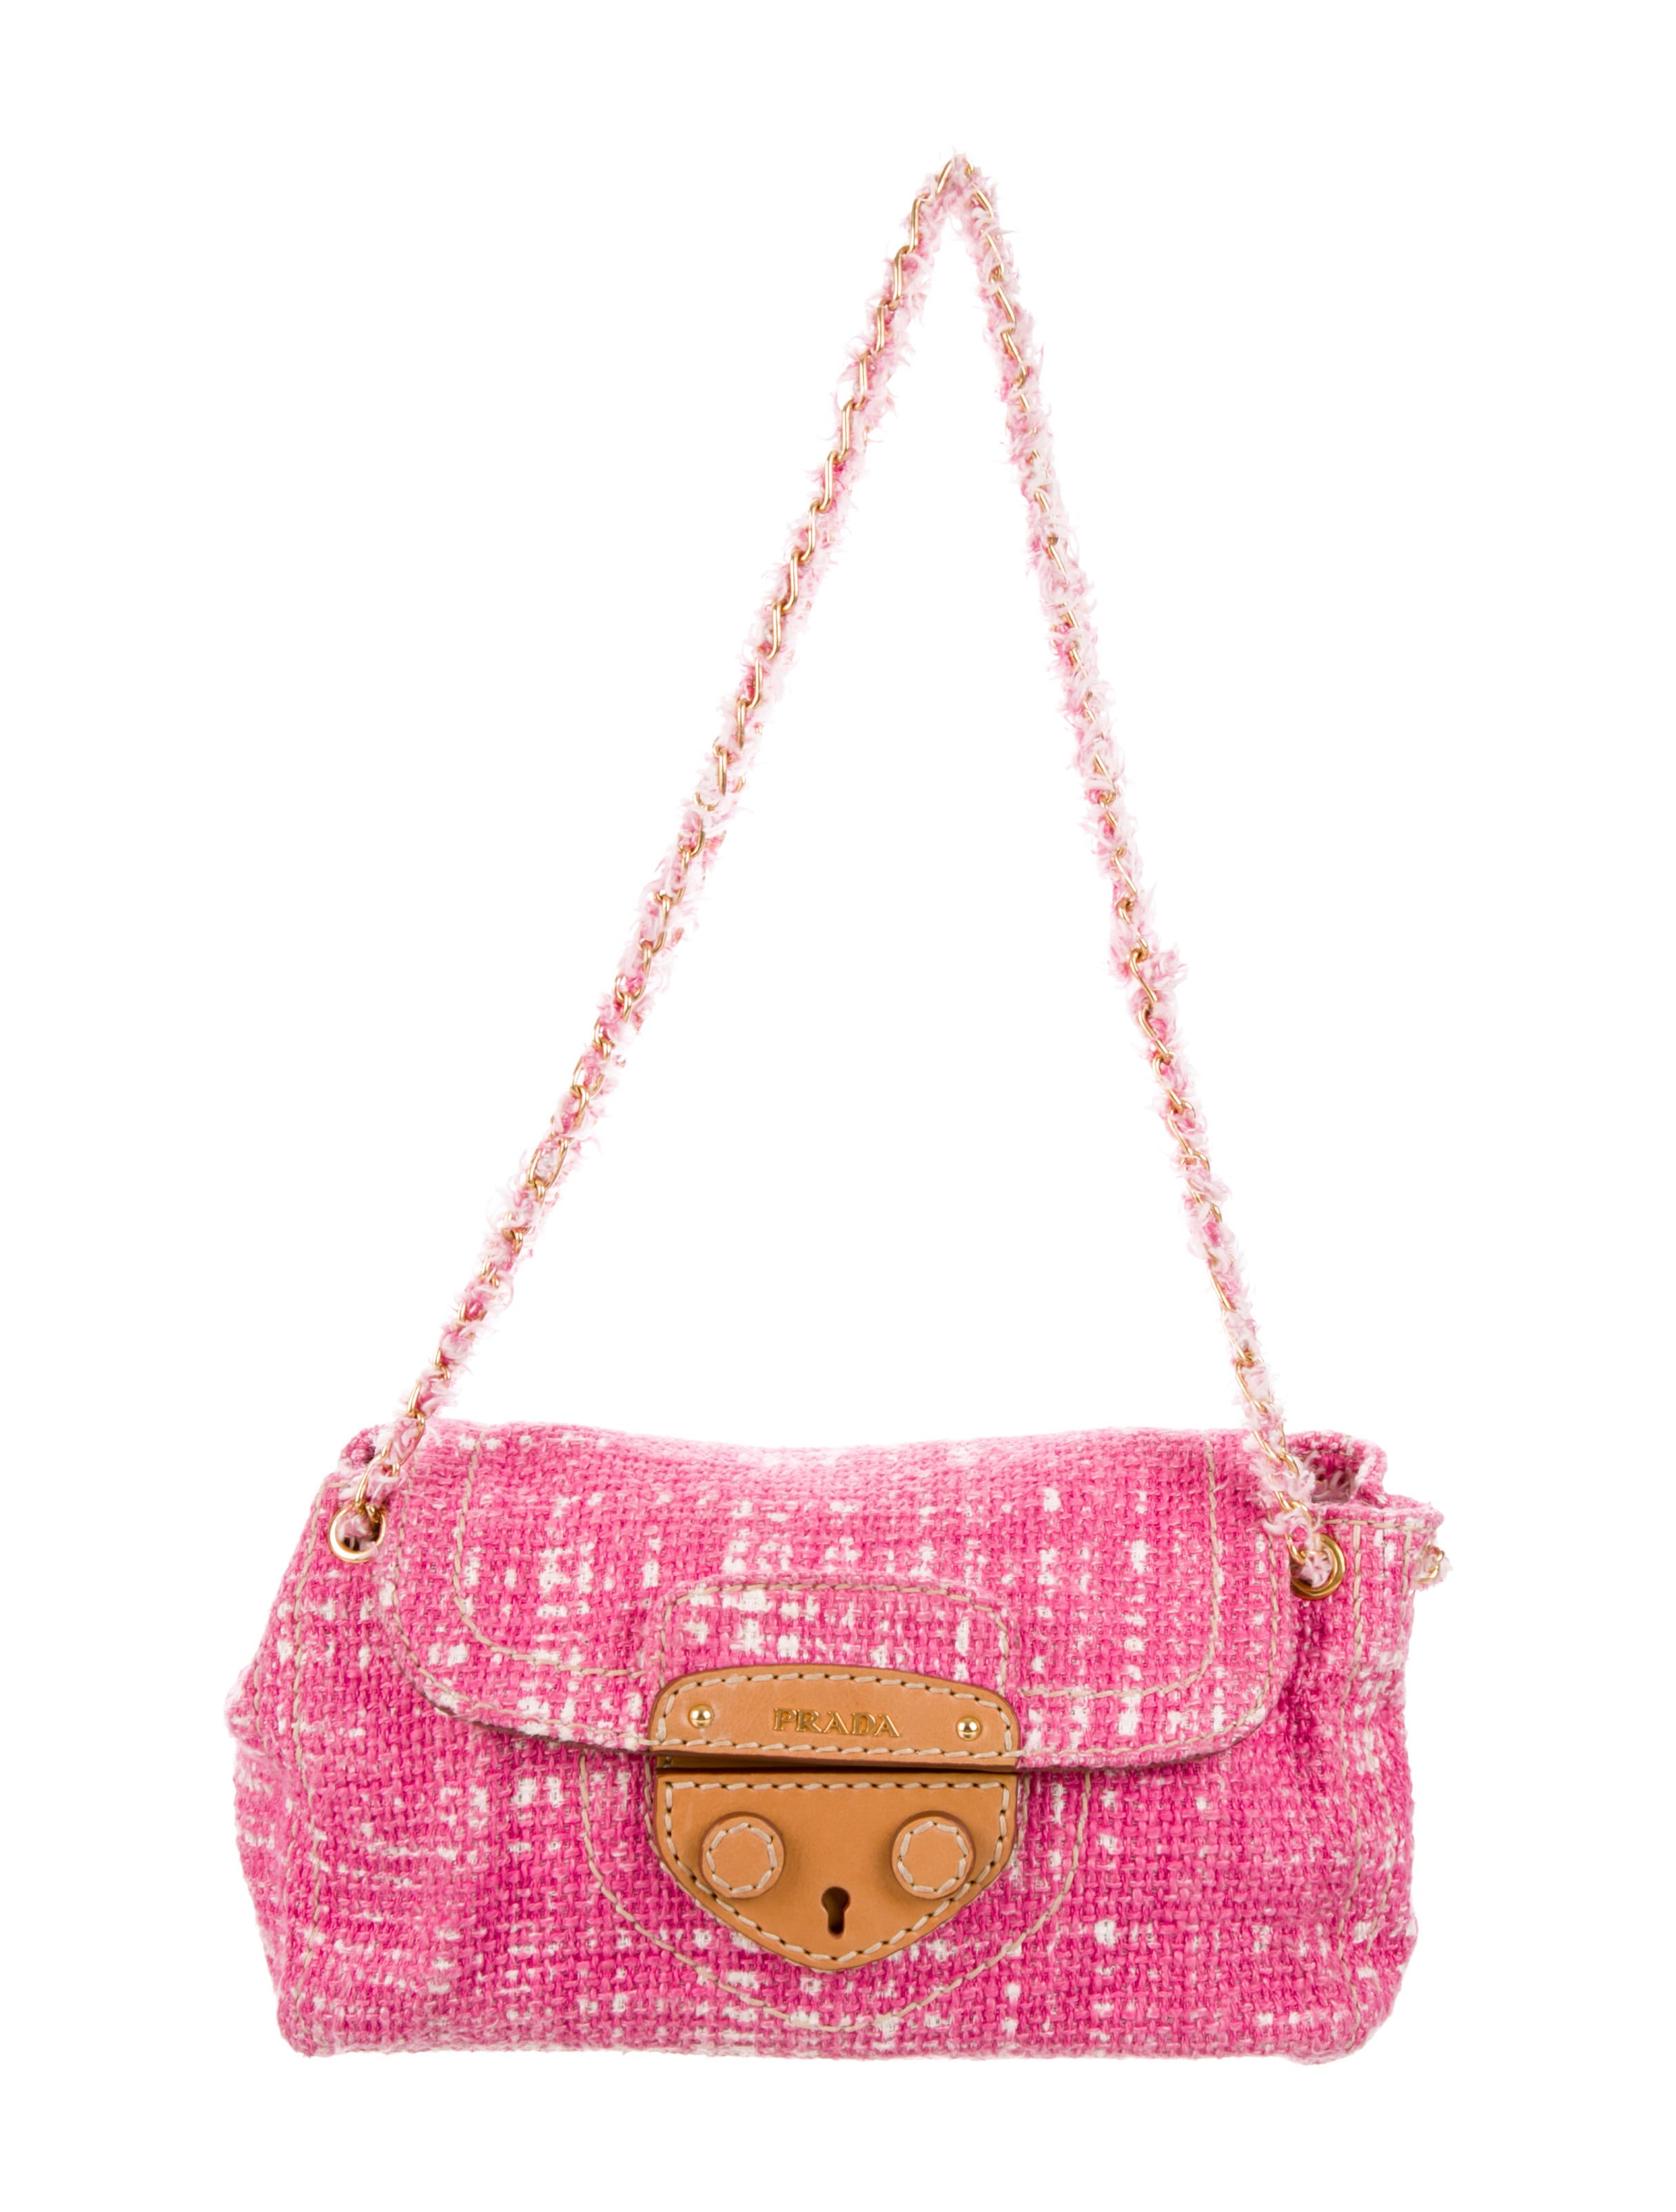 e07ee8506e Prada Tweed Flap Prada Tweed Prada Bag Bag Tela Flap Tela qqSxw0ET ...